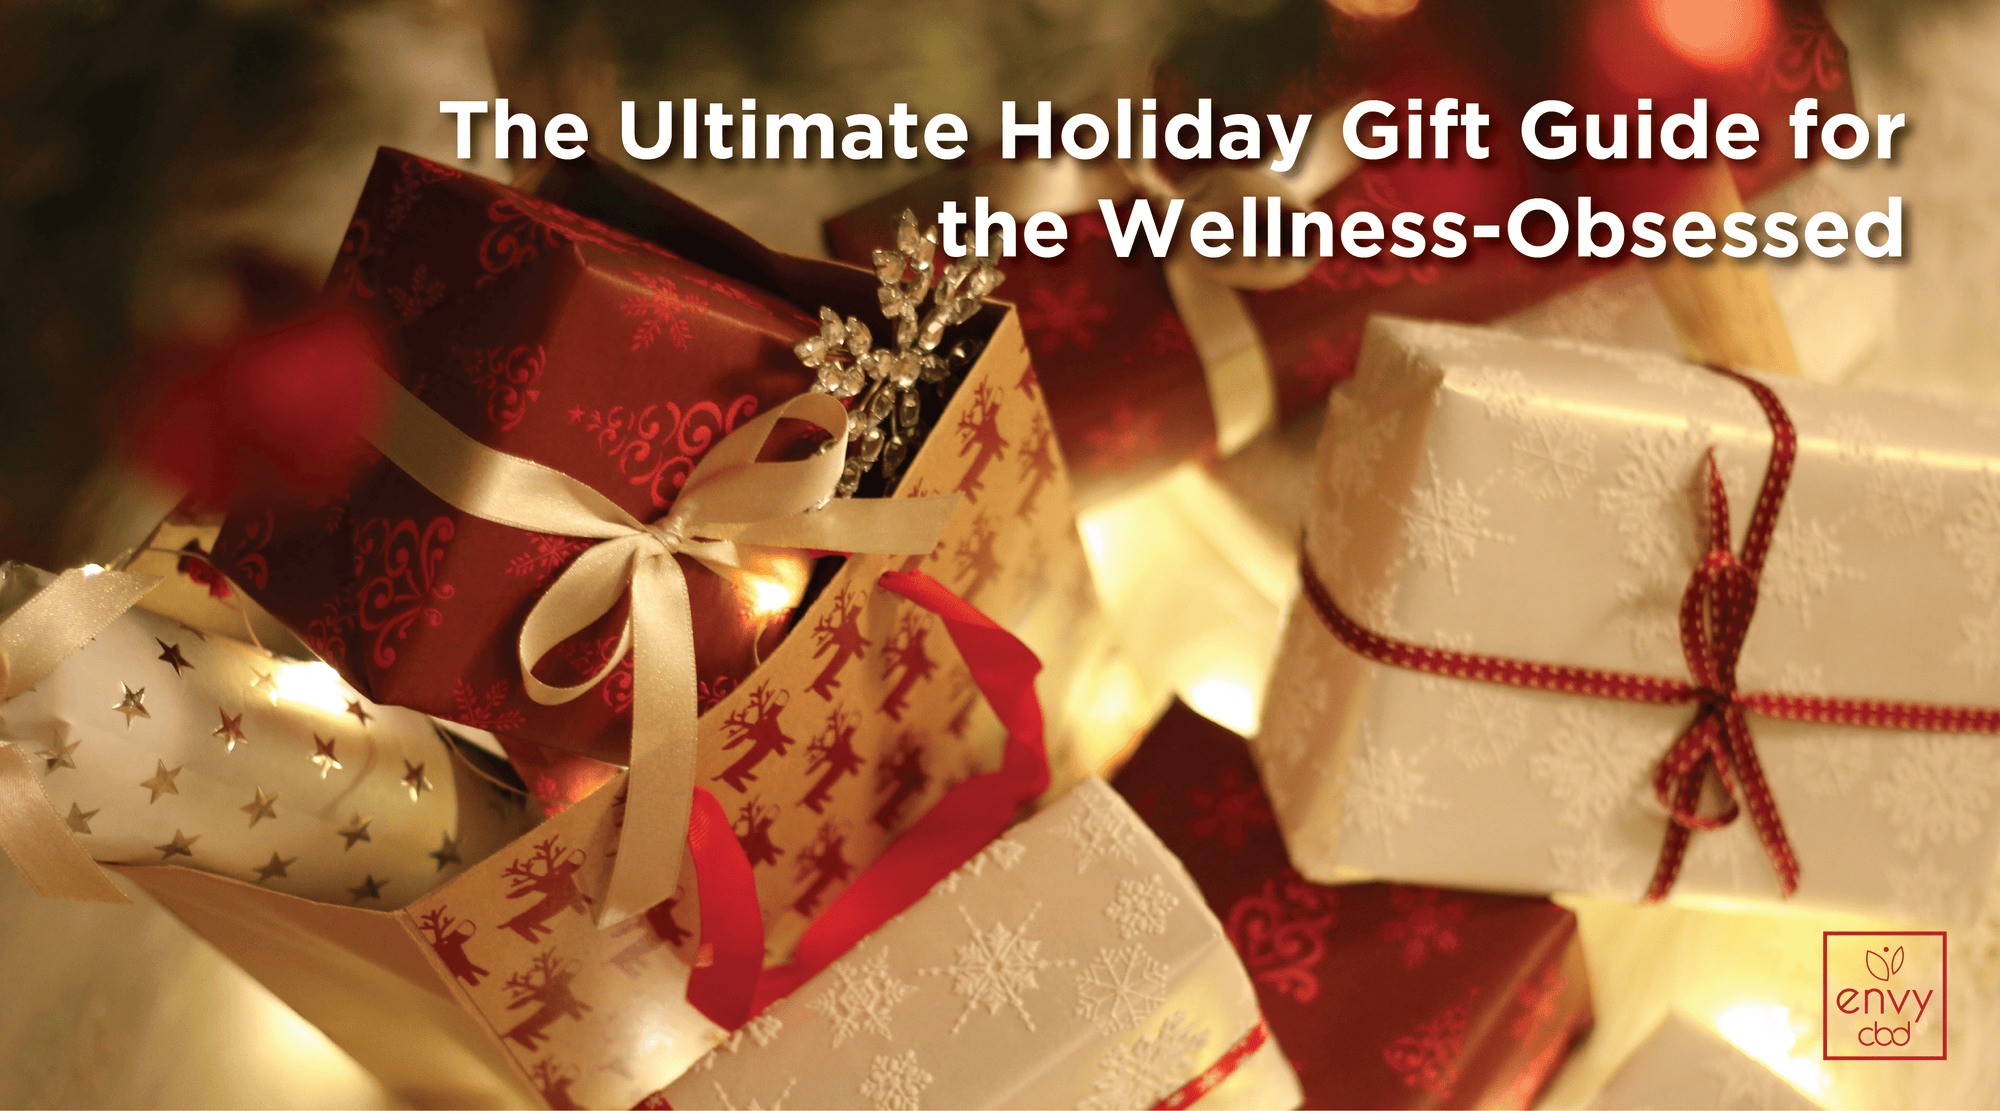 The Ultimate Holiday Gift Guide for Your Wellness-Obsessed Friends and Family!